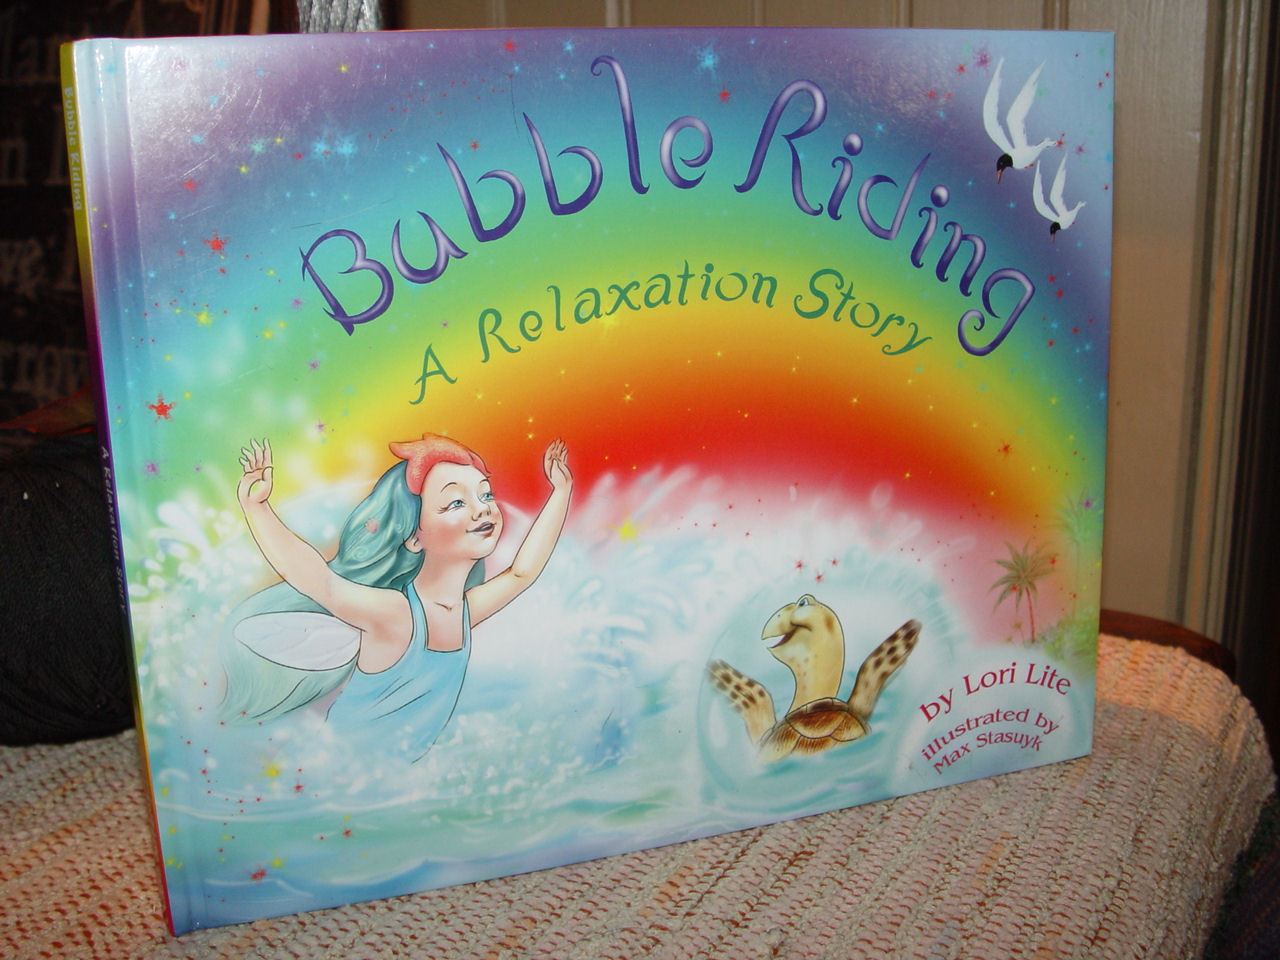 Bubble Riding: A Relaxation                                         Story by Lori Lite, illust by                                         Max Stasuyk ~ 2008 Children's                                         Wellness